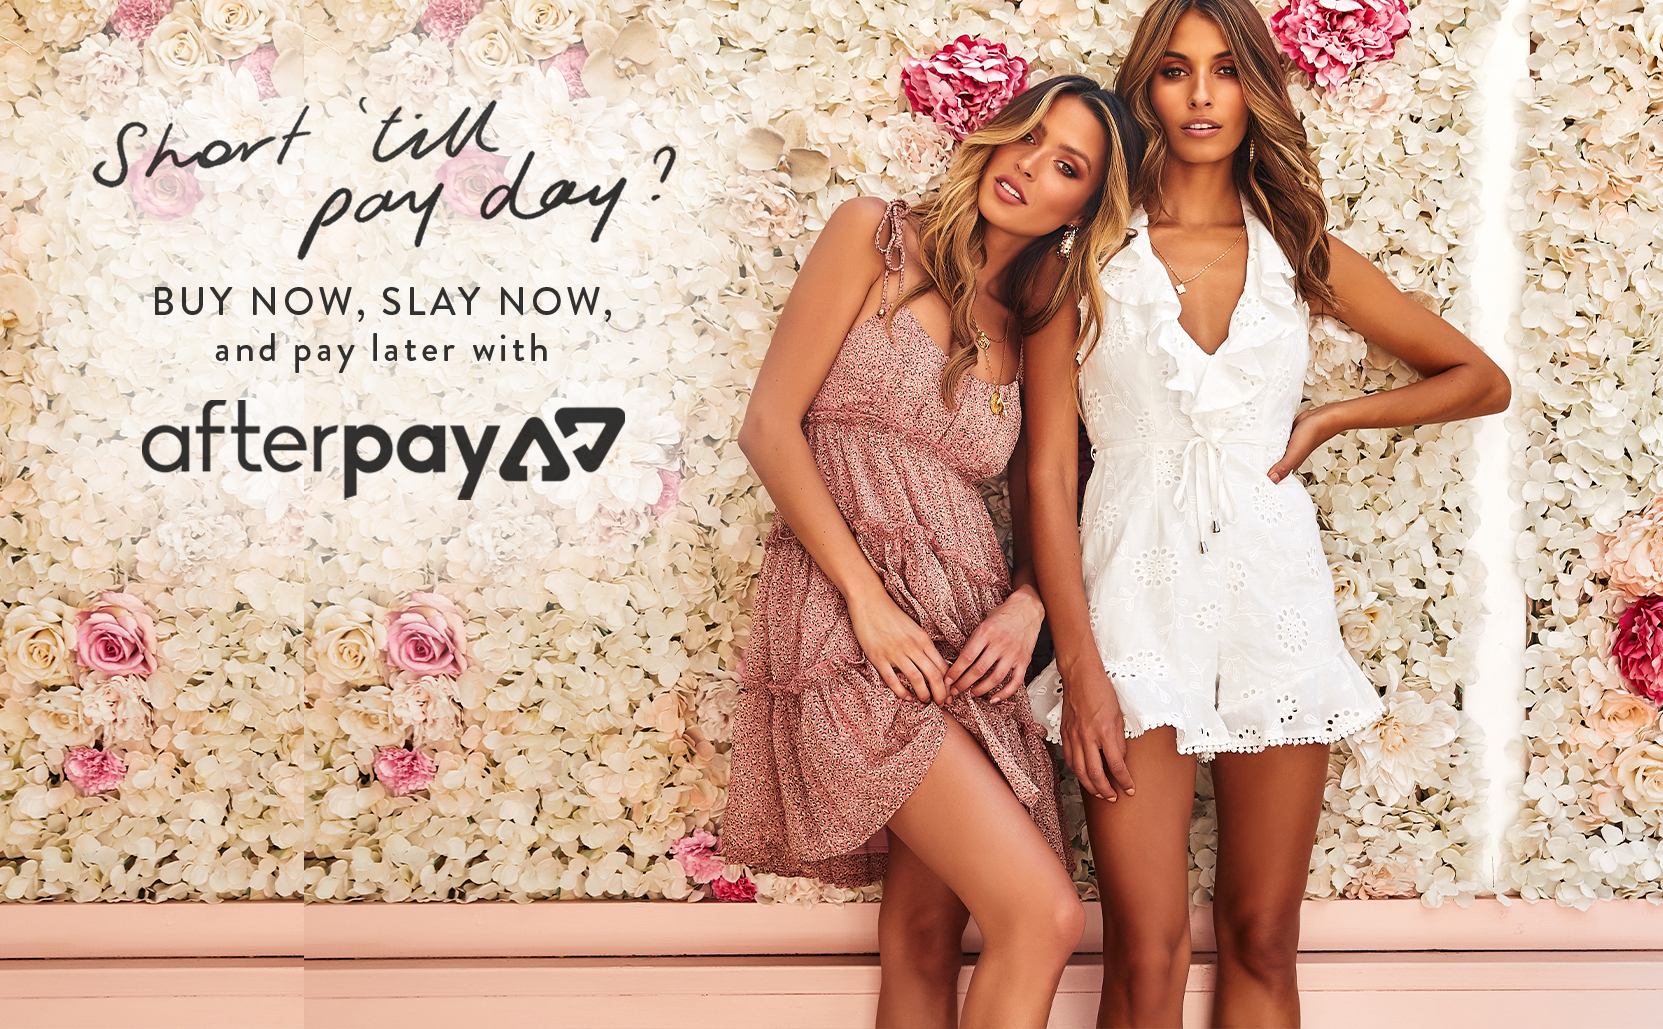 Short till pay day? Buy now, slay now, and pay later with Afterpay